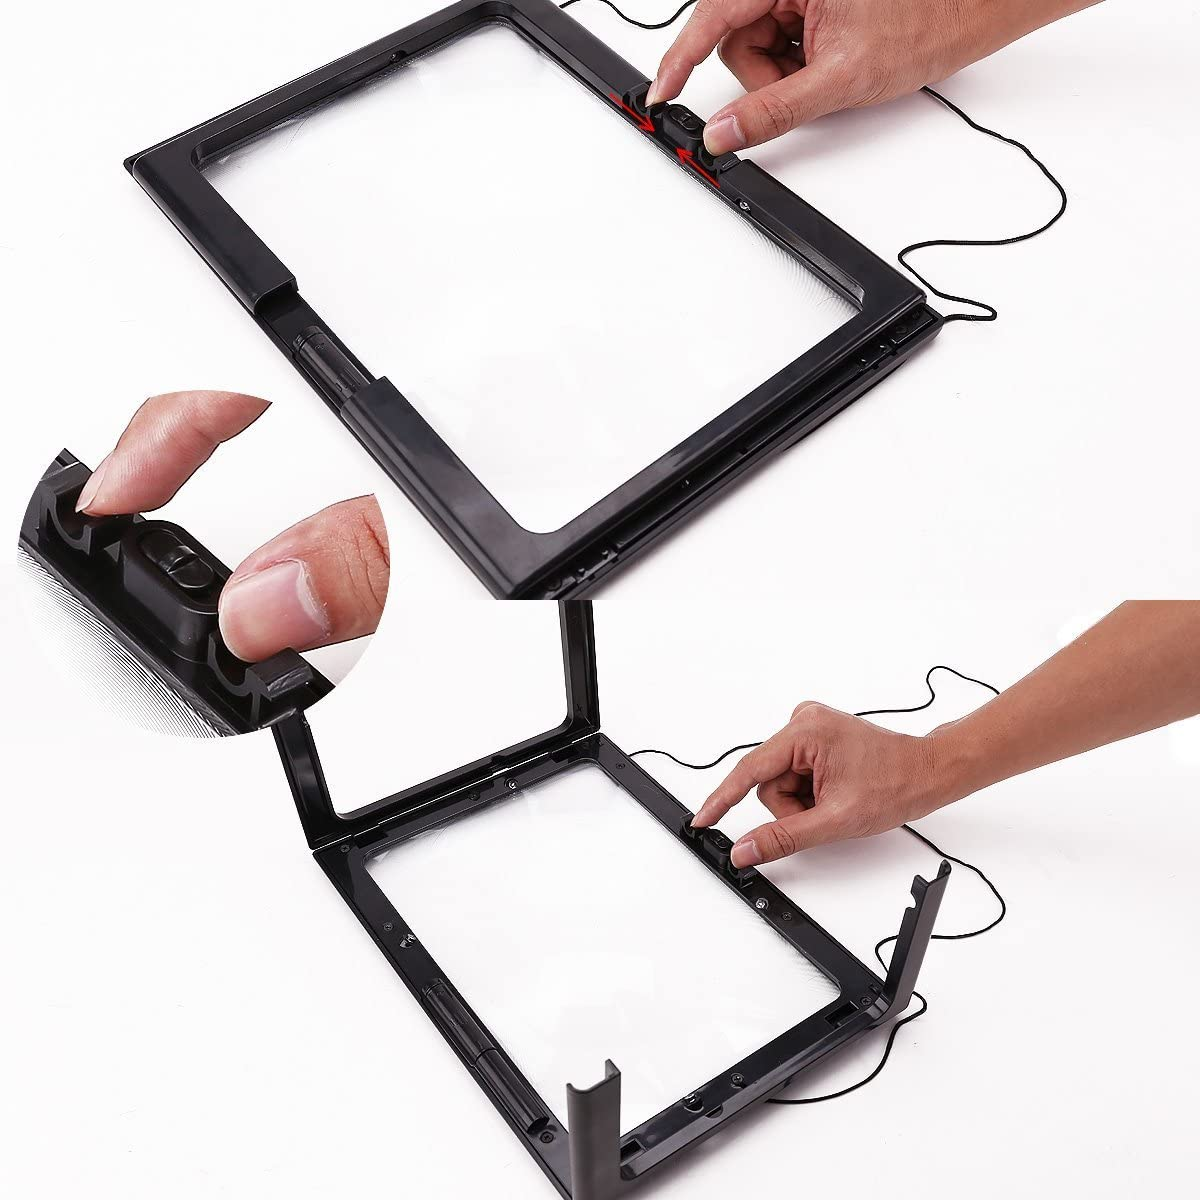 Hands Free Magnifying Glass With Light /& Neck Cord LED Illuminated Magnifier For Reading Sewing Crafts Handcraft Hobby New 1